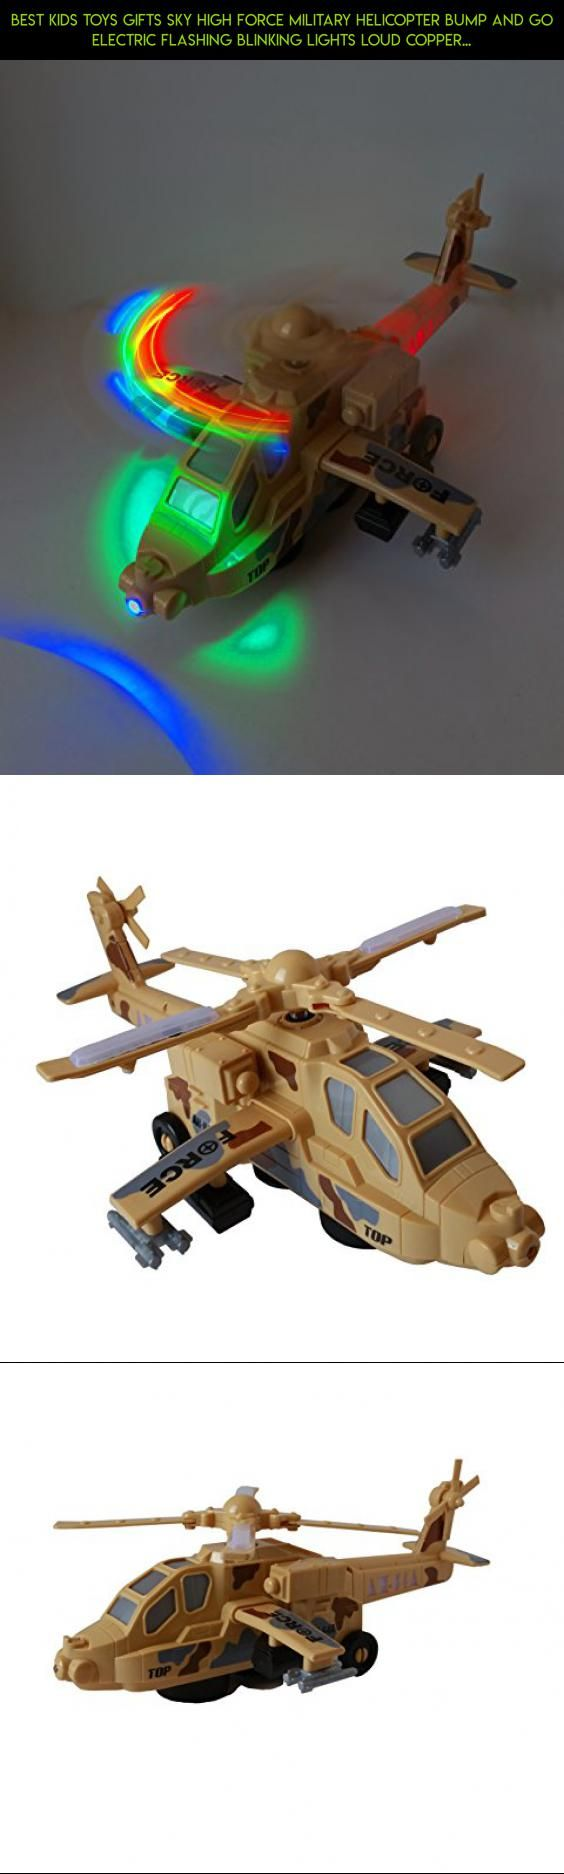 """Best Kids Toys Gifts Sky High Force Military Helicopter Bump and Go Electric Flashing Blinking Lights Loud Copper Sound (12"""" X 11 X 7.5"""") Stocking Stuffers #air #drone #racing #camera #parts #shopping #technology #hogs #fpv #osprey #plans #gadgets #products #tech #kit"""